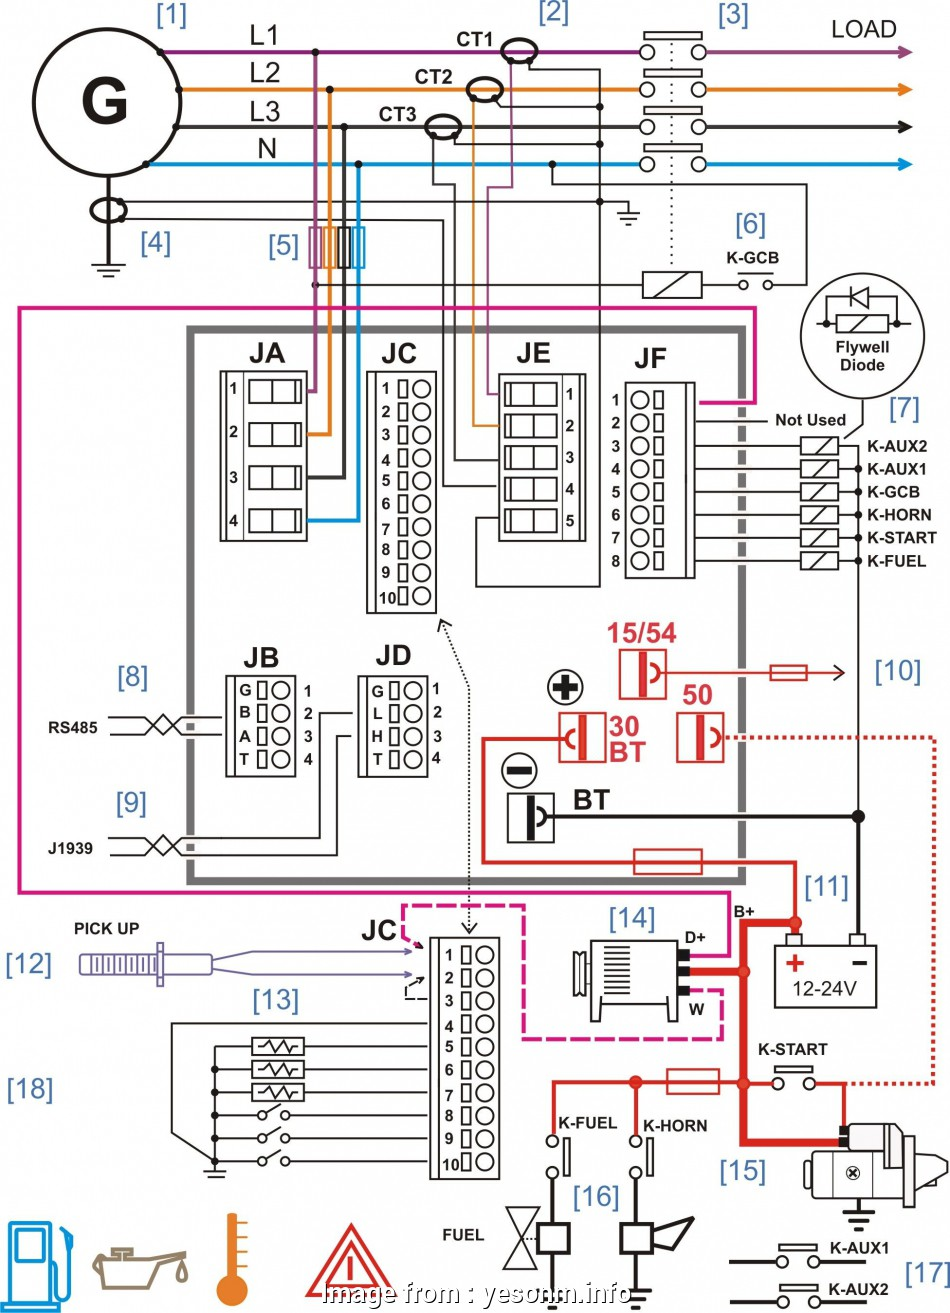 Typical Electrical Panel Wiring Top Typical House Wiring